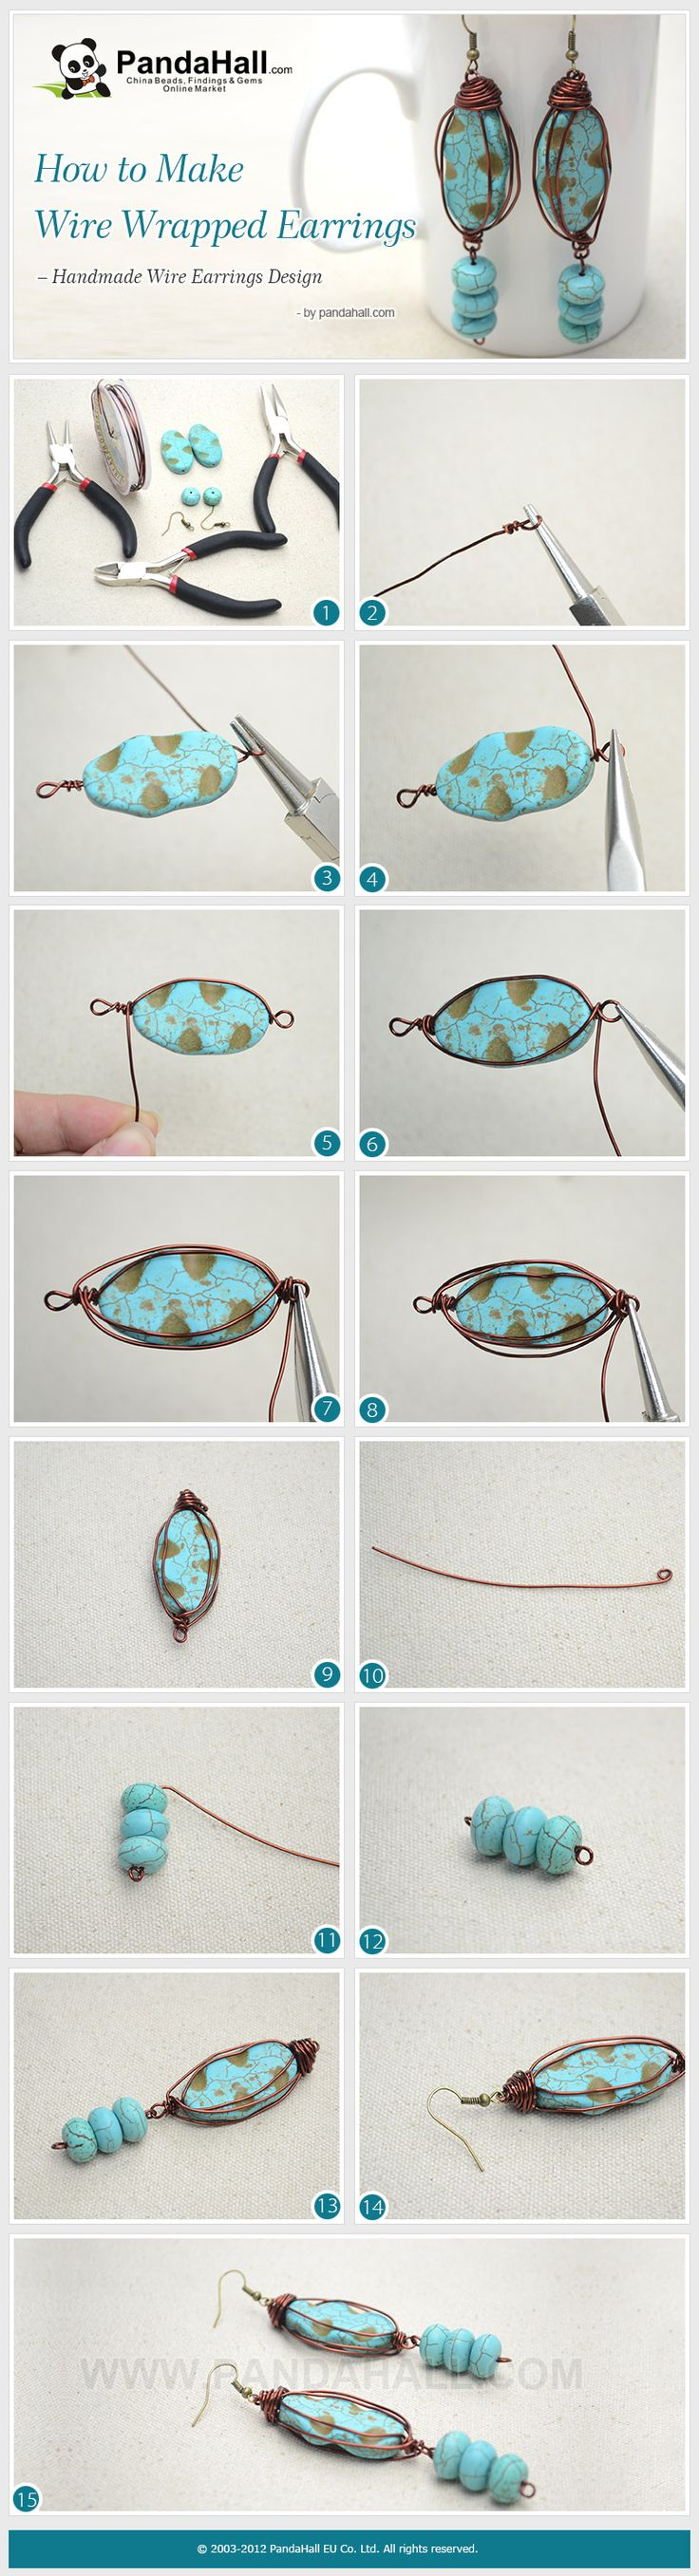 The vintage wire earring design is easy to make; in this handmade wire earring tutorial, we will teach you how to make wire wrapped earrings with copper wire and turquoise beads.